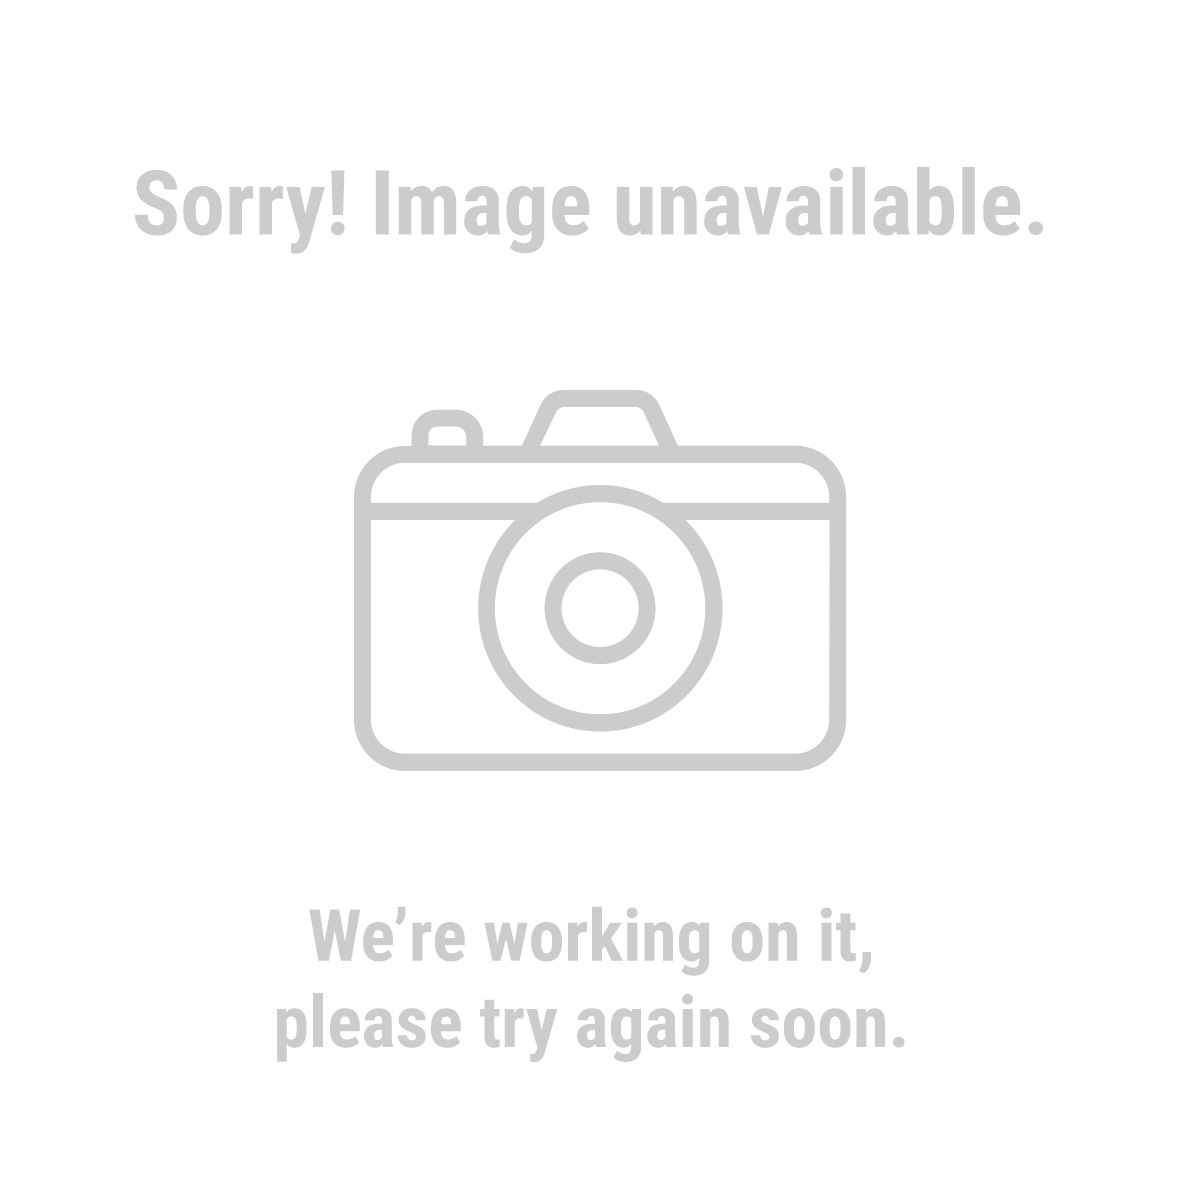 Meguiar's 62562 32 Oz. Meguiar's® Dual Action Cleaner Polish